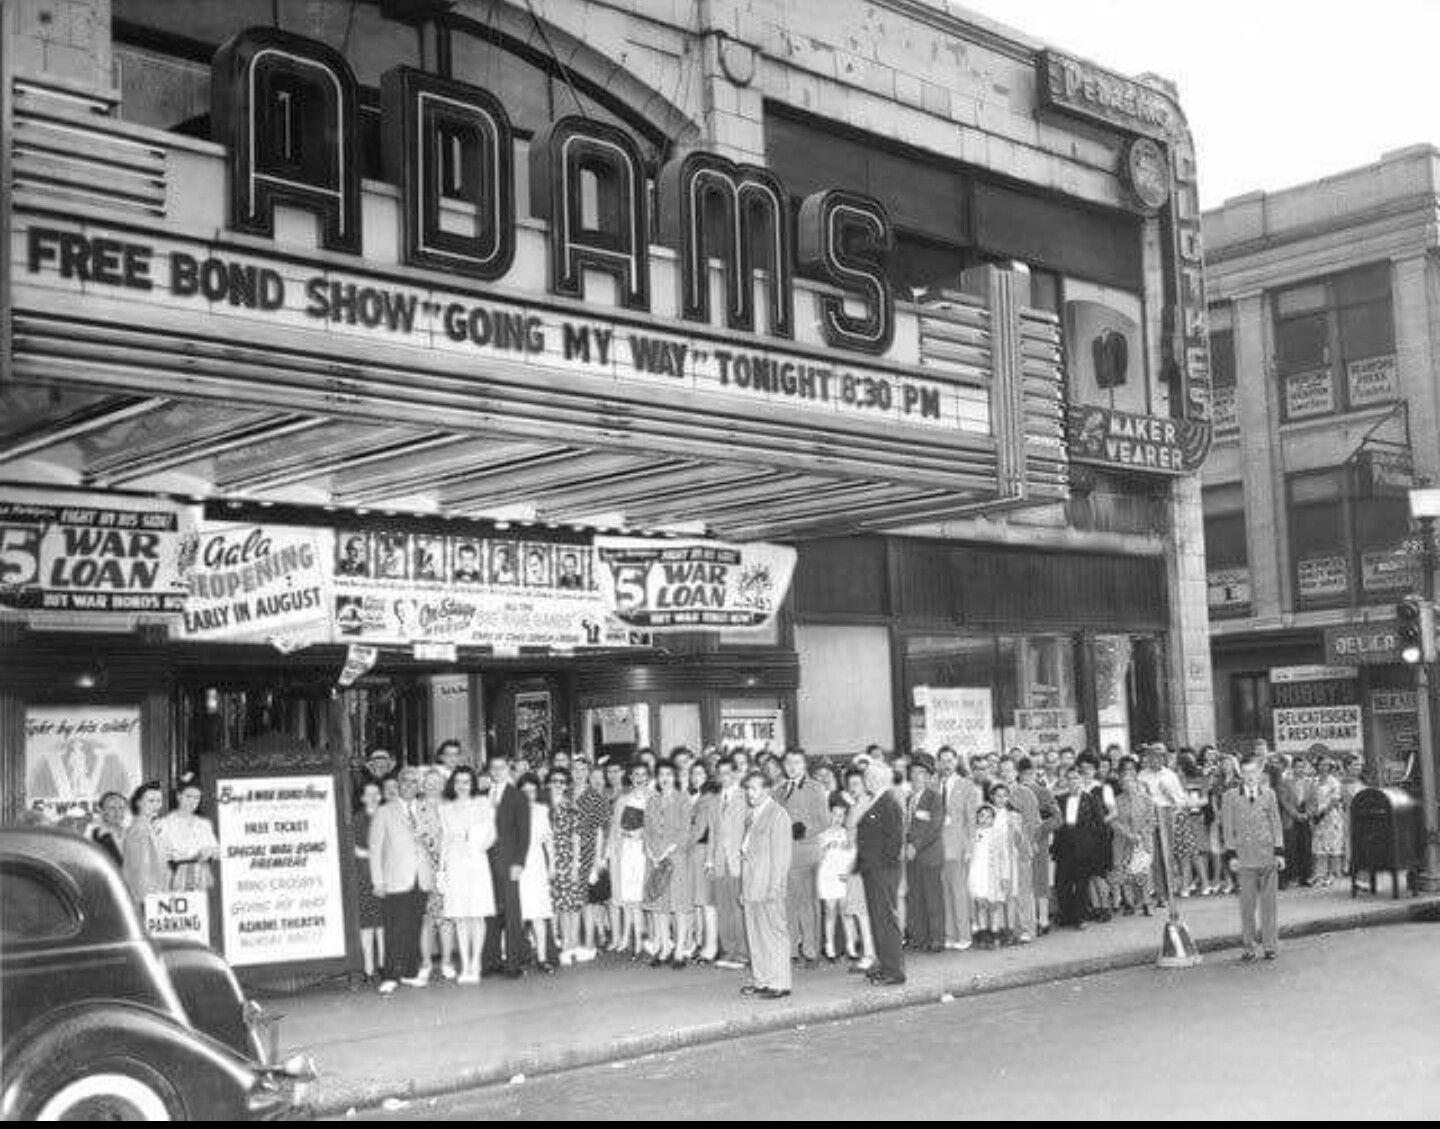 old photos of newark nj newark nj tumblr pam war bond showing of going my way at a theater in nj 1944